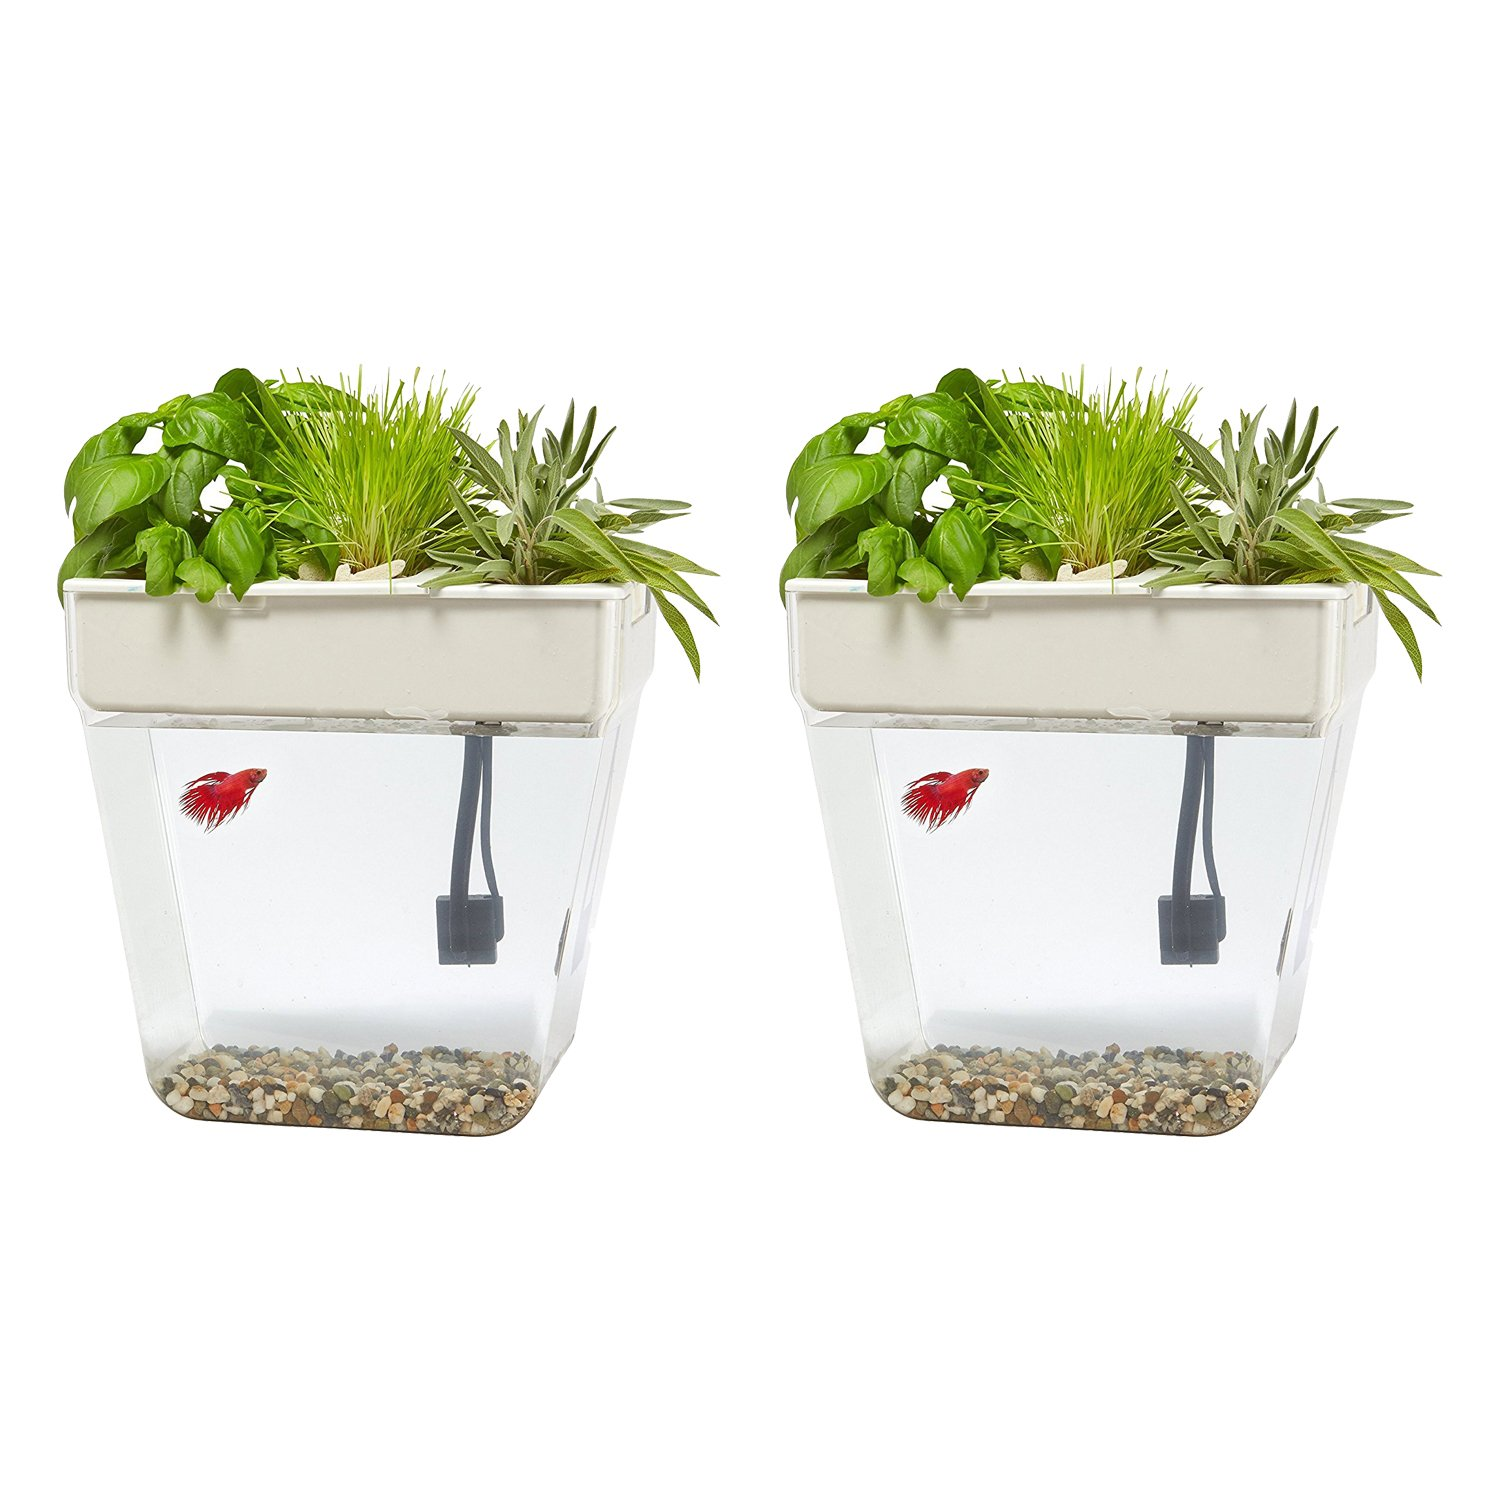 Back to the Roots 3 Gal. Self-Cleaning Aquaponic Water Garden Fish Tank, 2 Pack